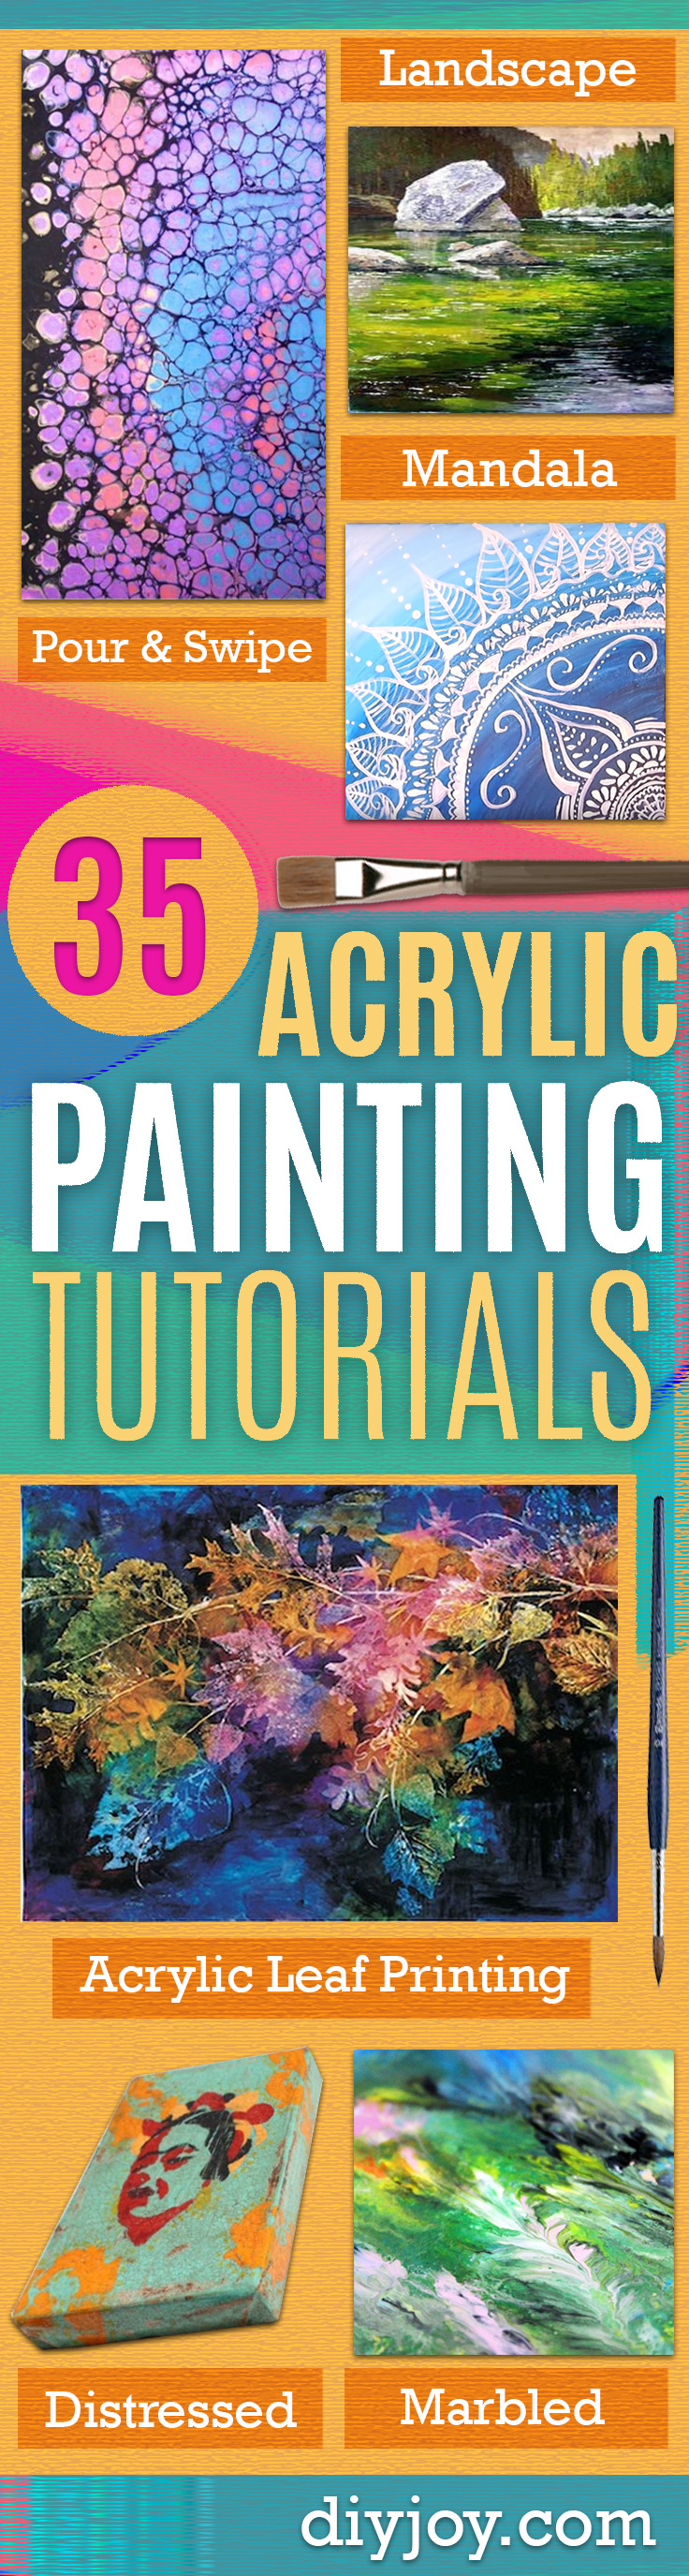 Acrylic Painting Tutorials and Techniques - DIY Acrylic Painting Ideas on Canvas - Make Flowers, Ocean, Sky, Abstract People, Landscapes, Buildings, Animals, Portraits, Sunset With Acrylics - Step by Step Art Lessons for Beginners - Easy Video Tutorials and How To for Acrylic Paintings #art #acrylic #diyart #artlessons #painting http://diyjoy.com/acrylic-painting-tutorials